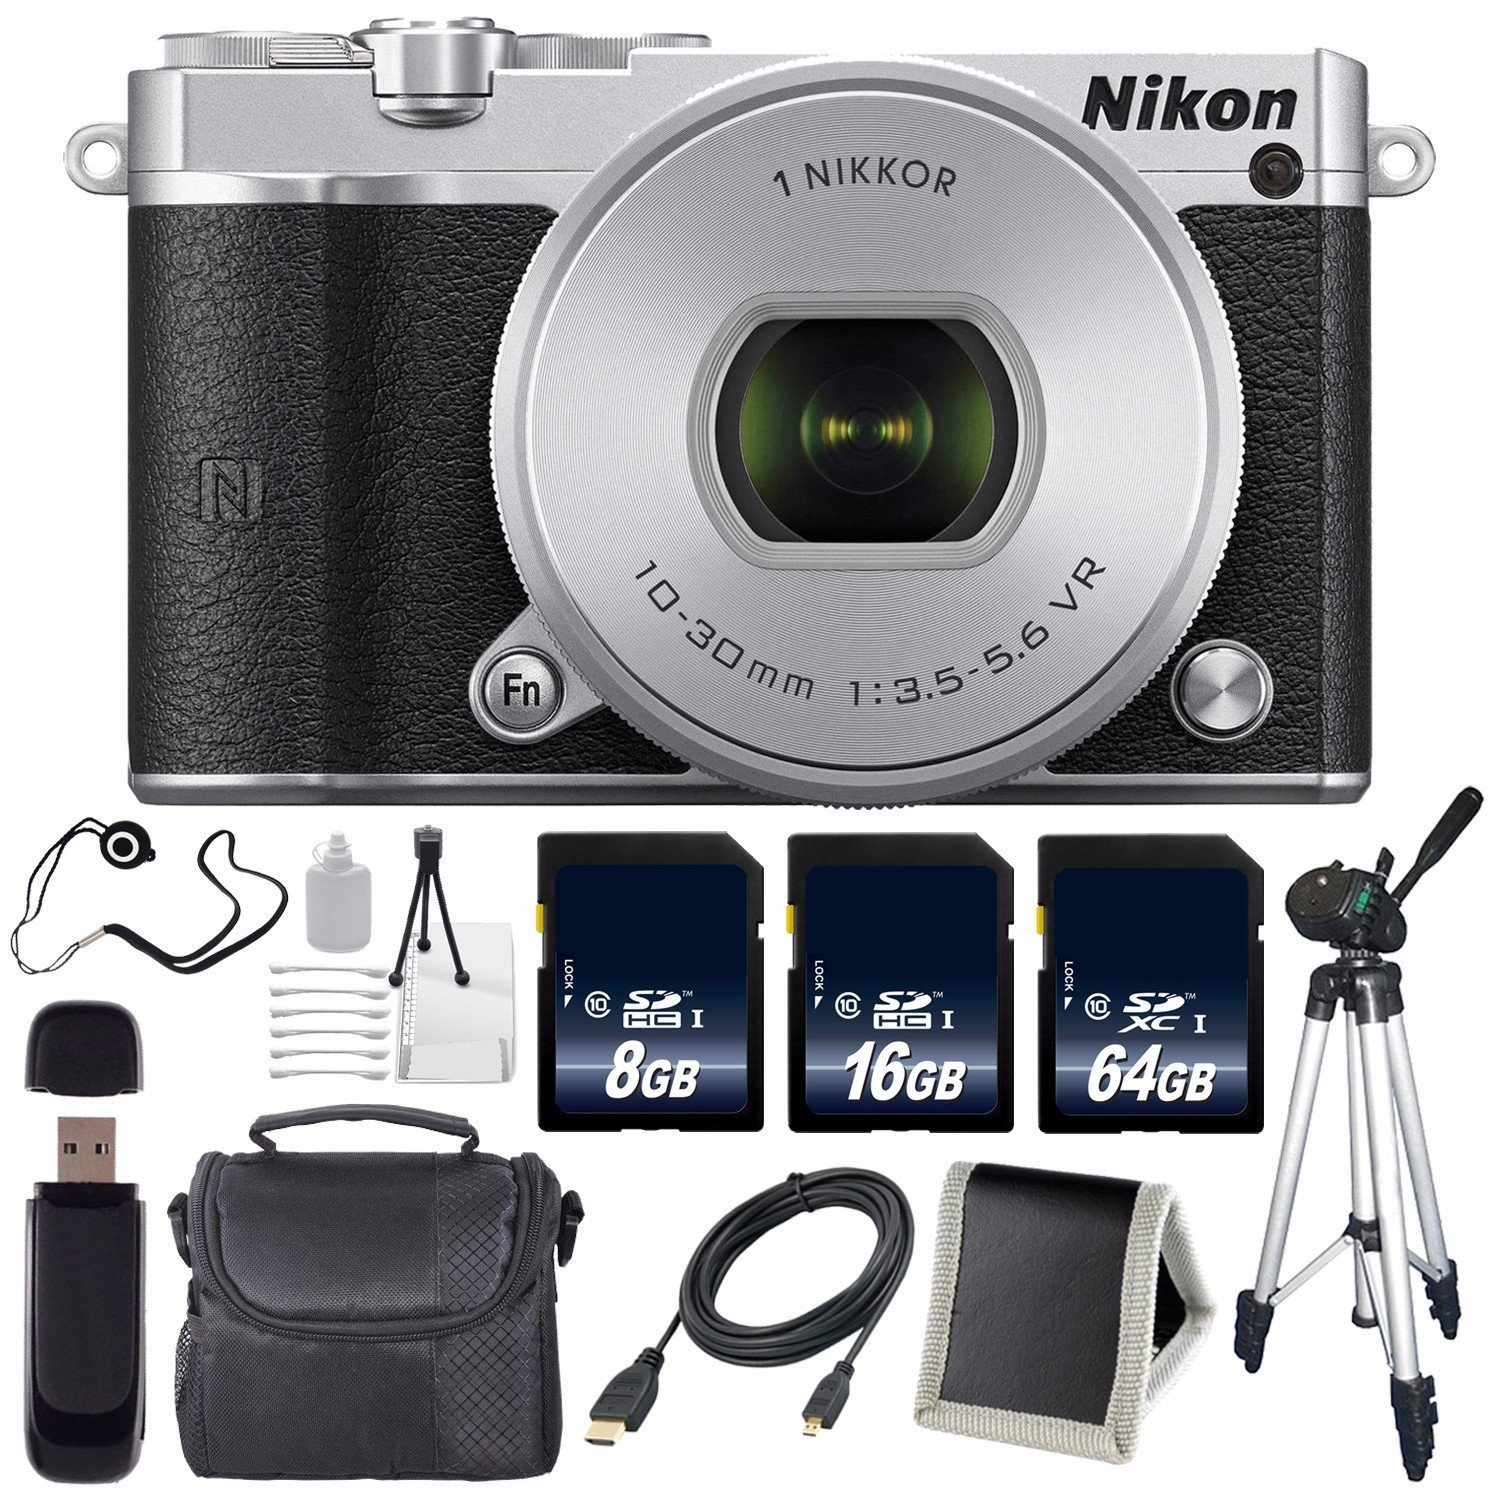 Nikon 1 J5 Mirrorless Digital Camera with 10-30mm Lens (Silver) (International Model) No Warranty + Tripod + Carrying Case + Micro HDMI Cable + SD Card USB Reader + Memory Card Wallet Bundle